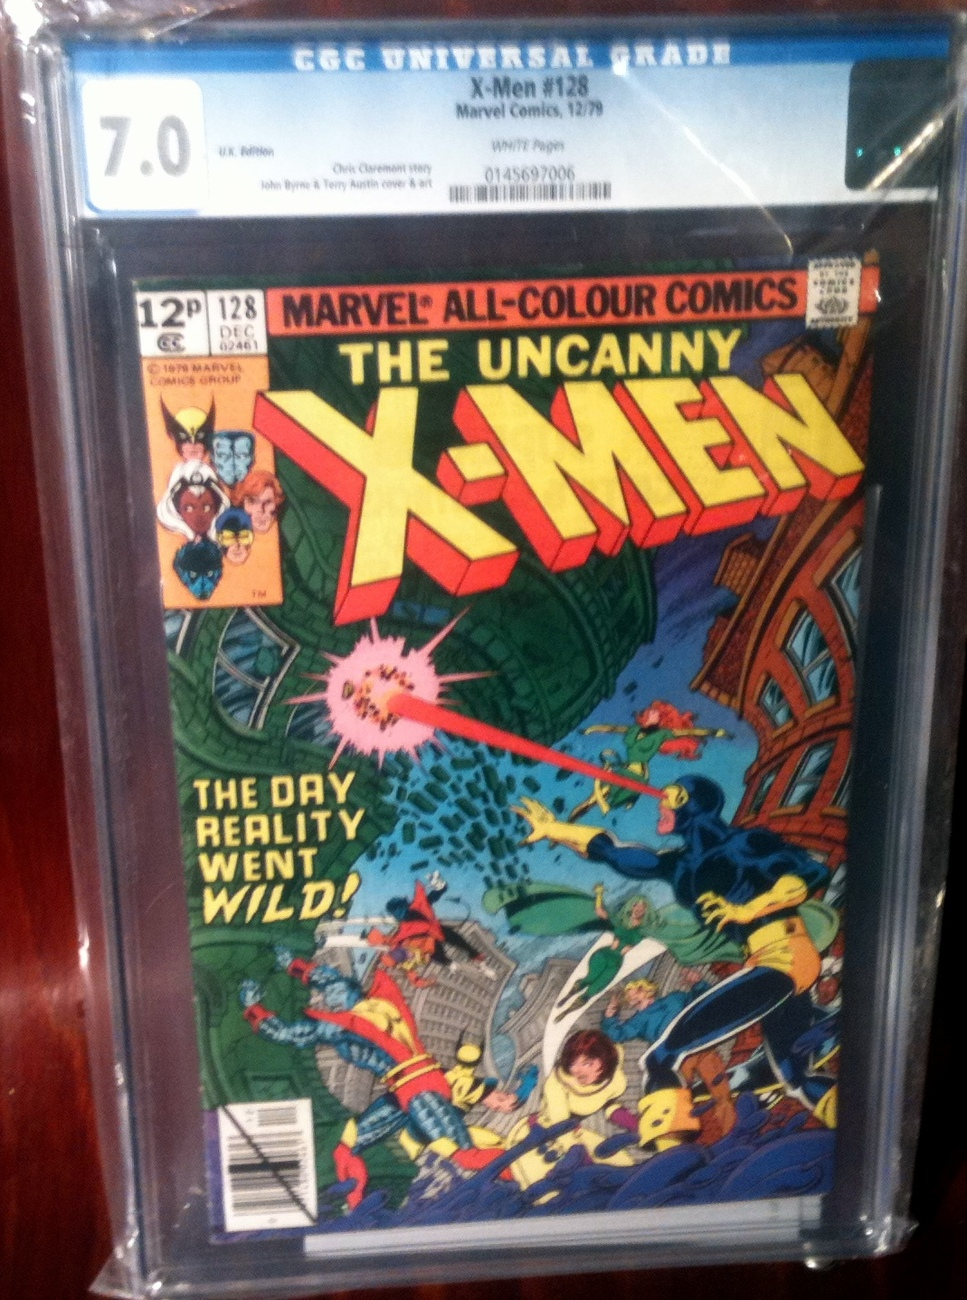 X-Men (1963) # 128 CGC Graded 7.0 FINE+ UK Edition